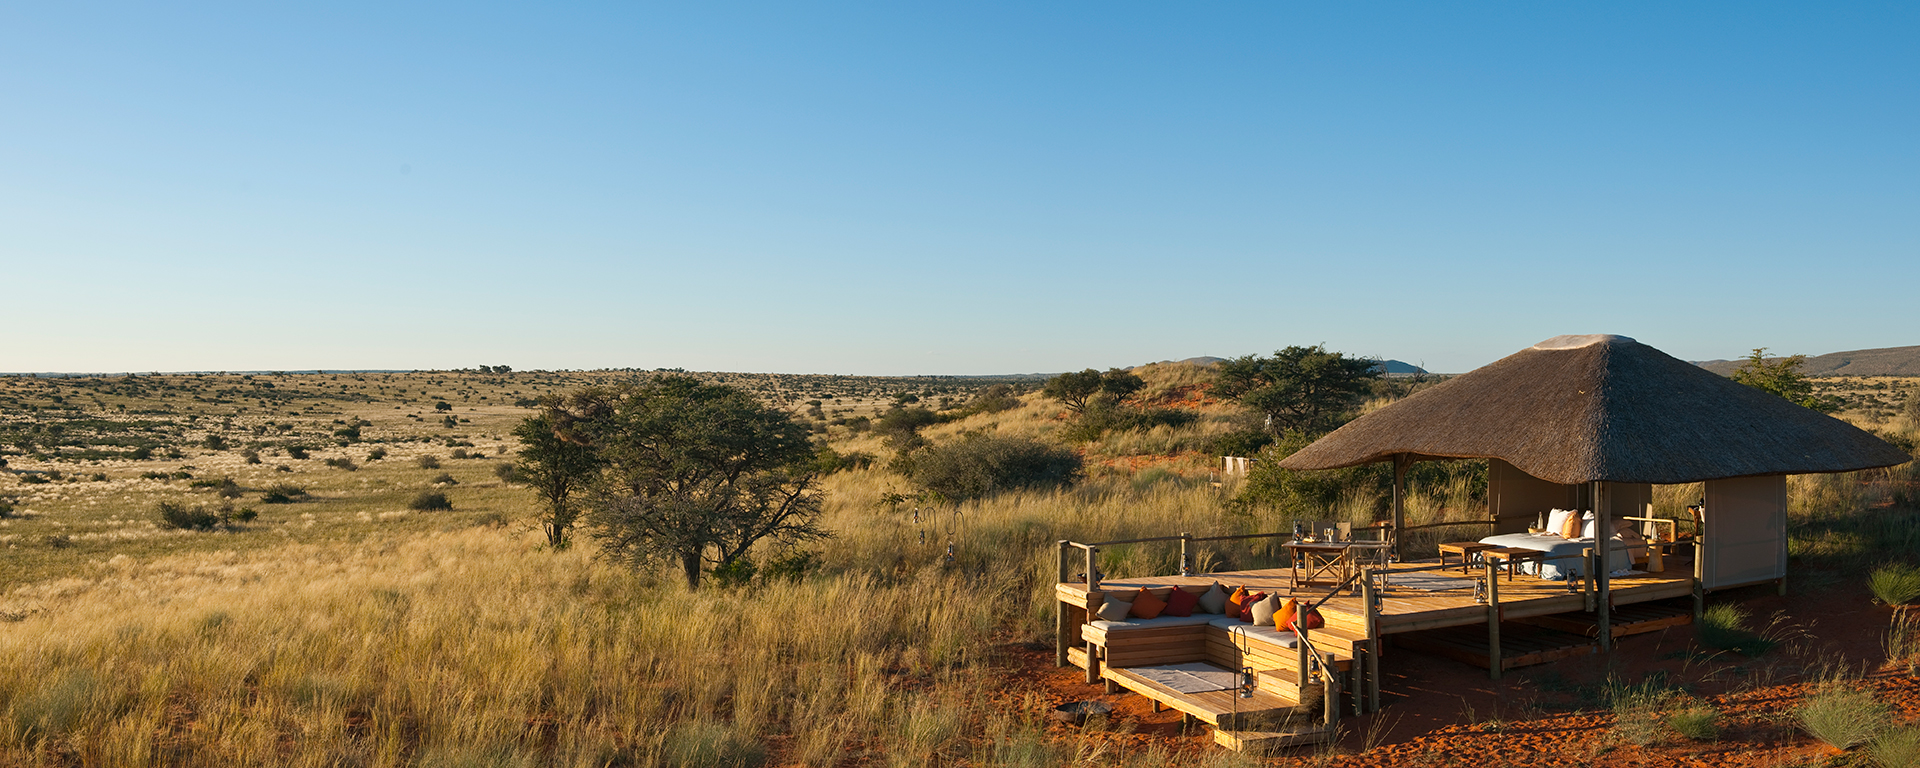 Malori is Tswalu's private sleepout deck. It comes complete with an uninterrupted view of the Kalahari savannah.